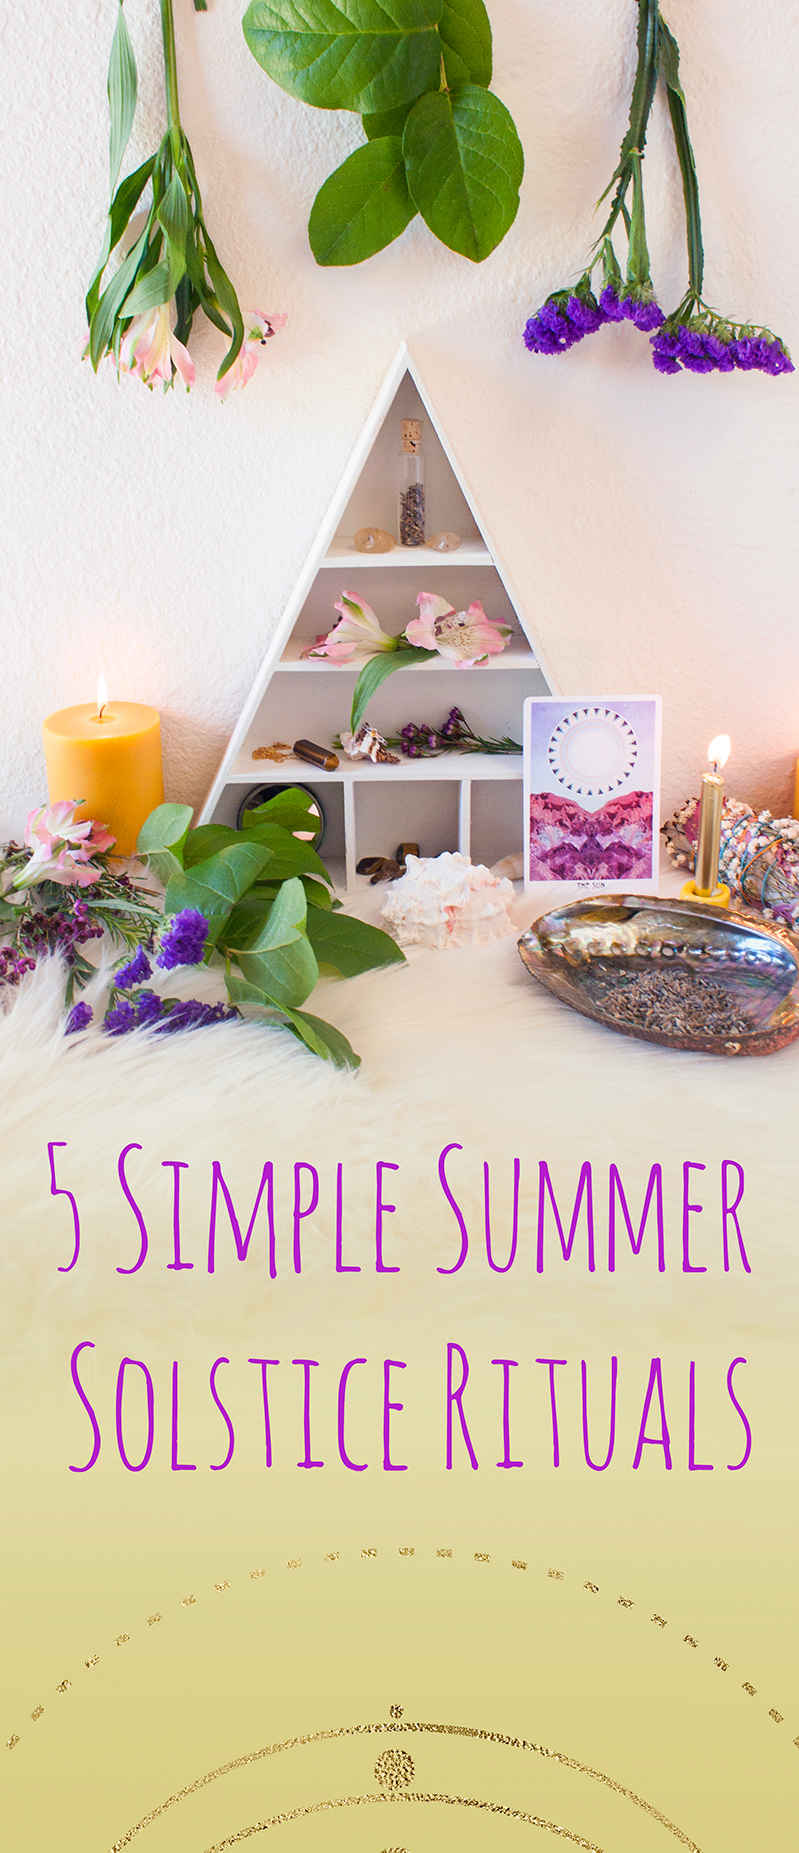 Pic2-5-simple-summer-solstice-rituals